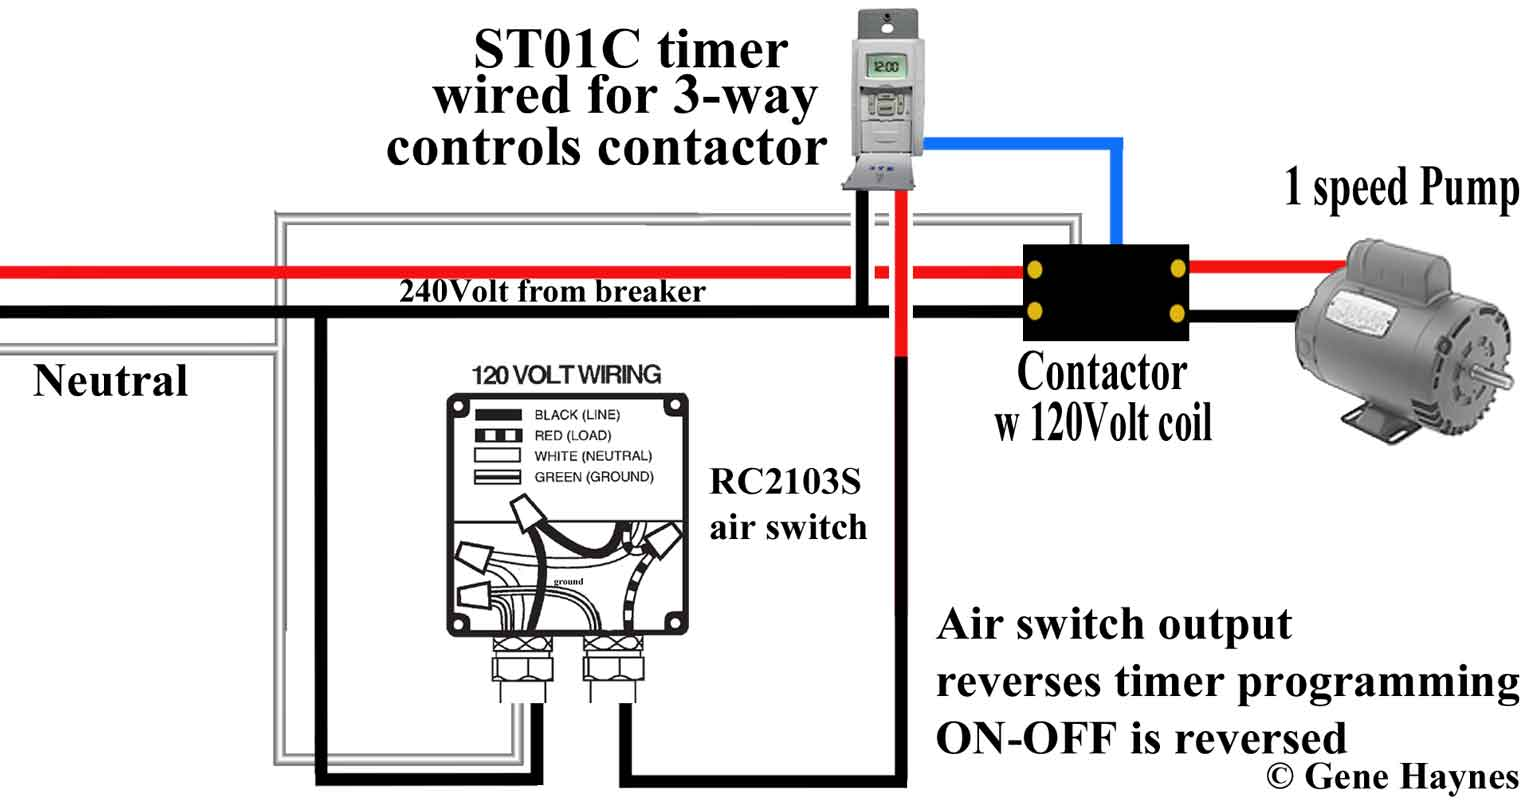 How To Wire Water Heater With Two Switches 3 Way Electrical Switch Wiring Diagram Indicator On A Light Convert Single Pole Into Using St01 Add